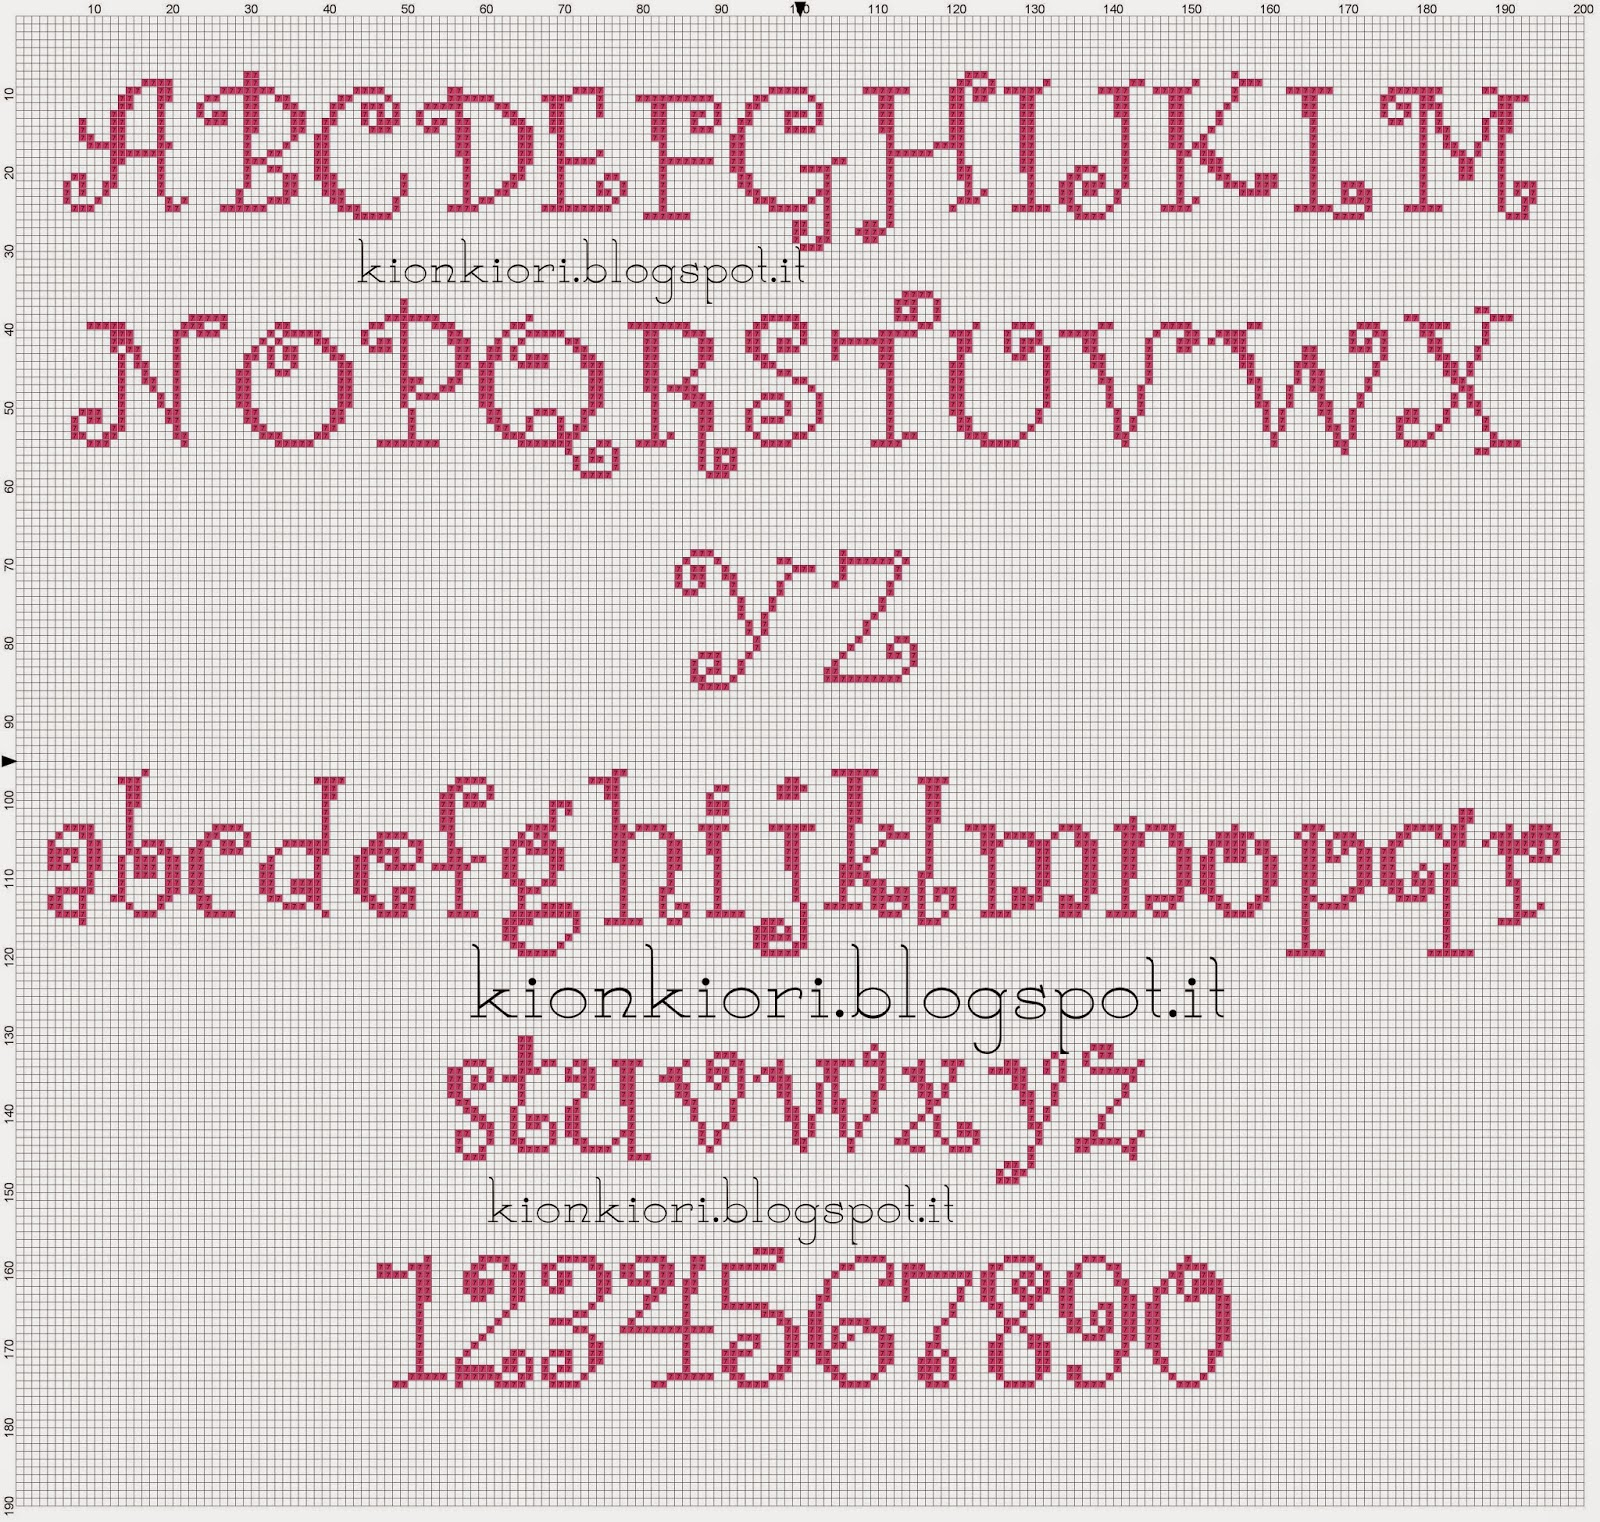 1000 images about cs alphabet 3 on pinterest for Lettere a punto croce schemi